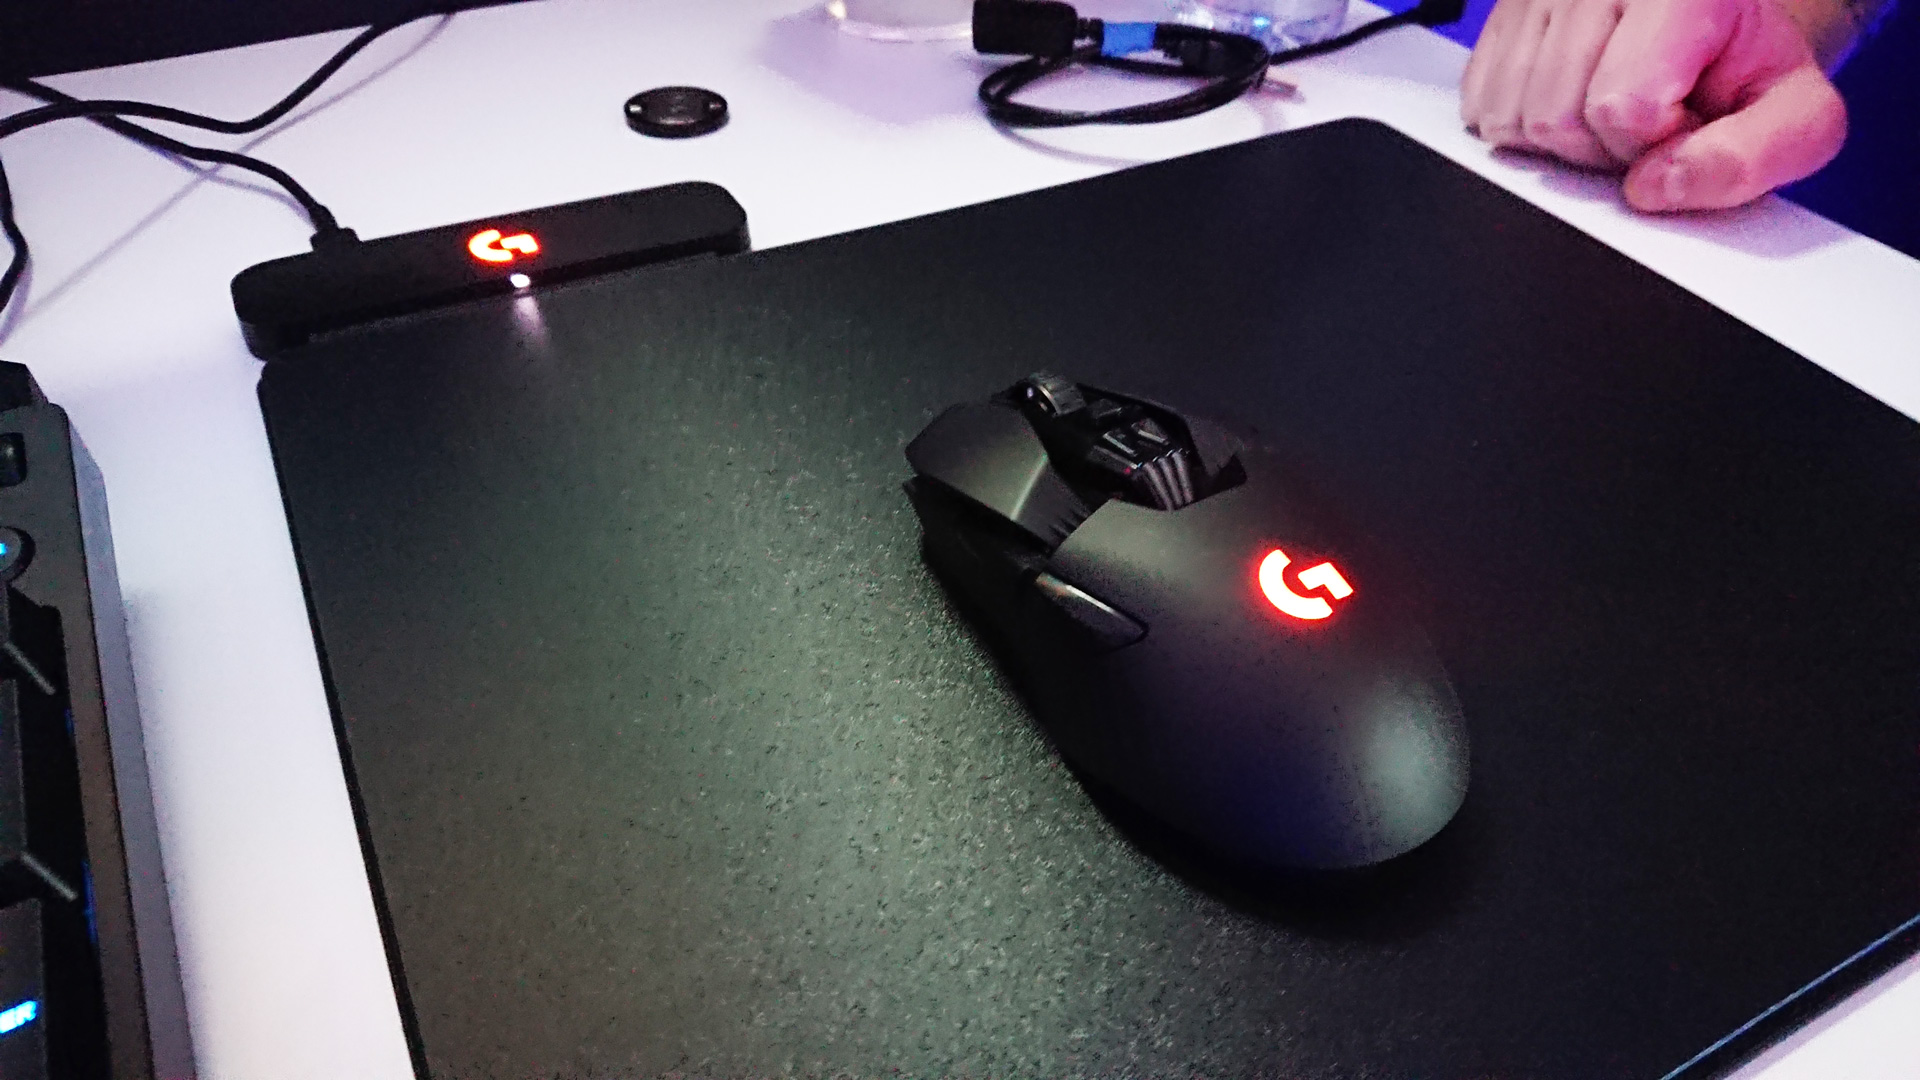 e3 2017 hands on with logitech powerplay wireless charging system